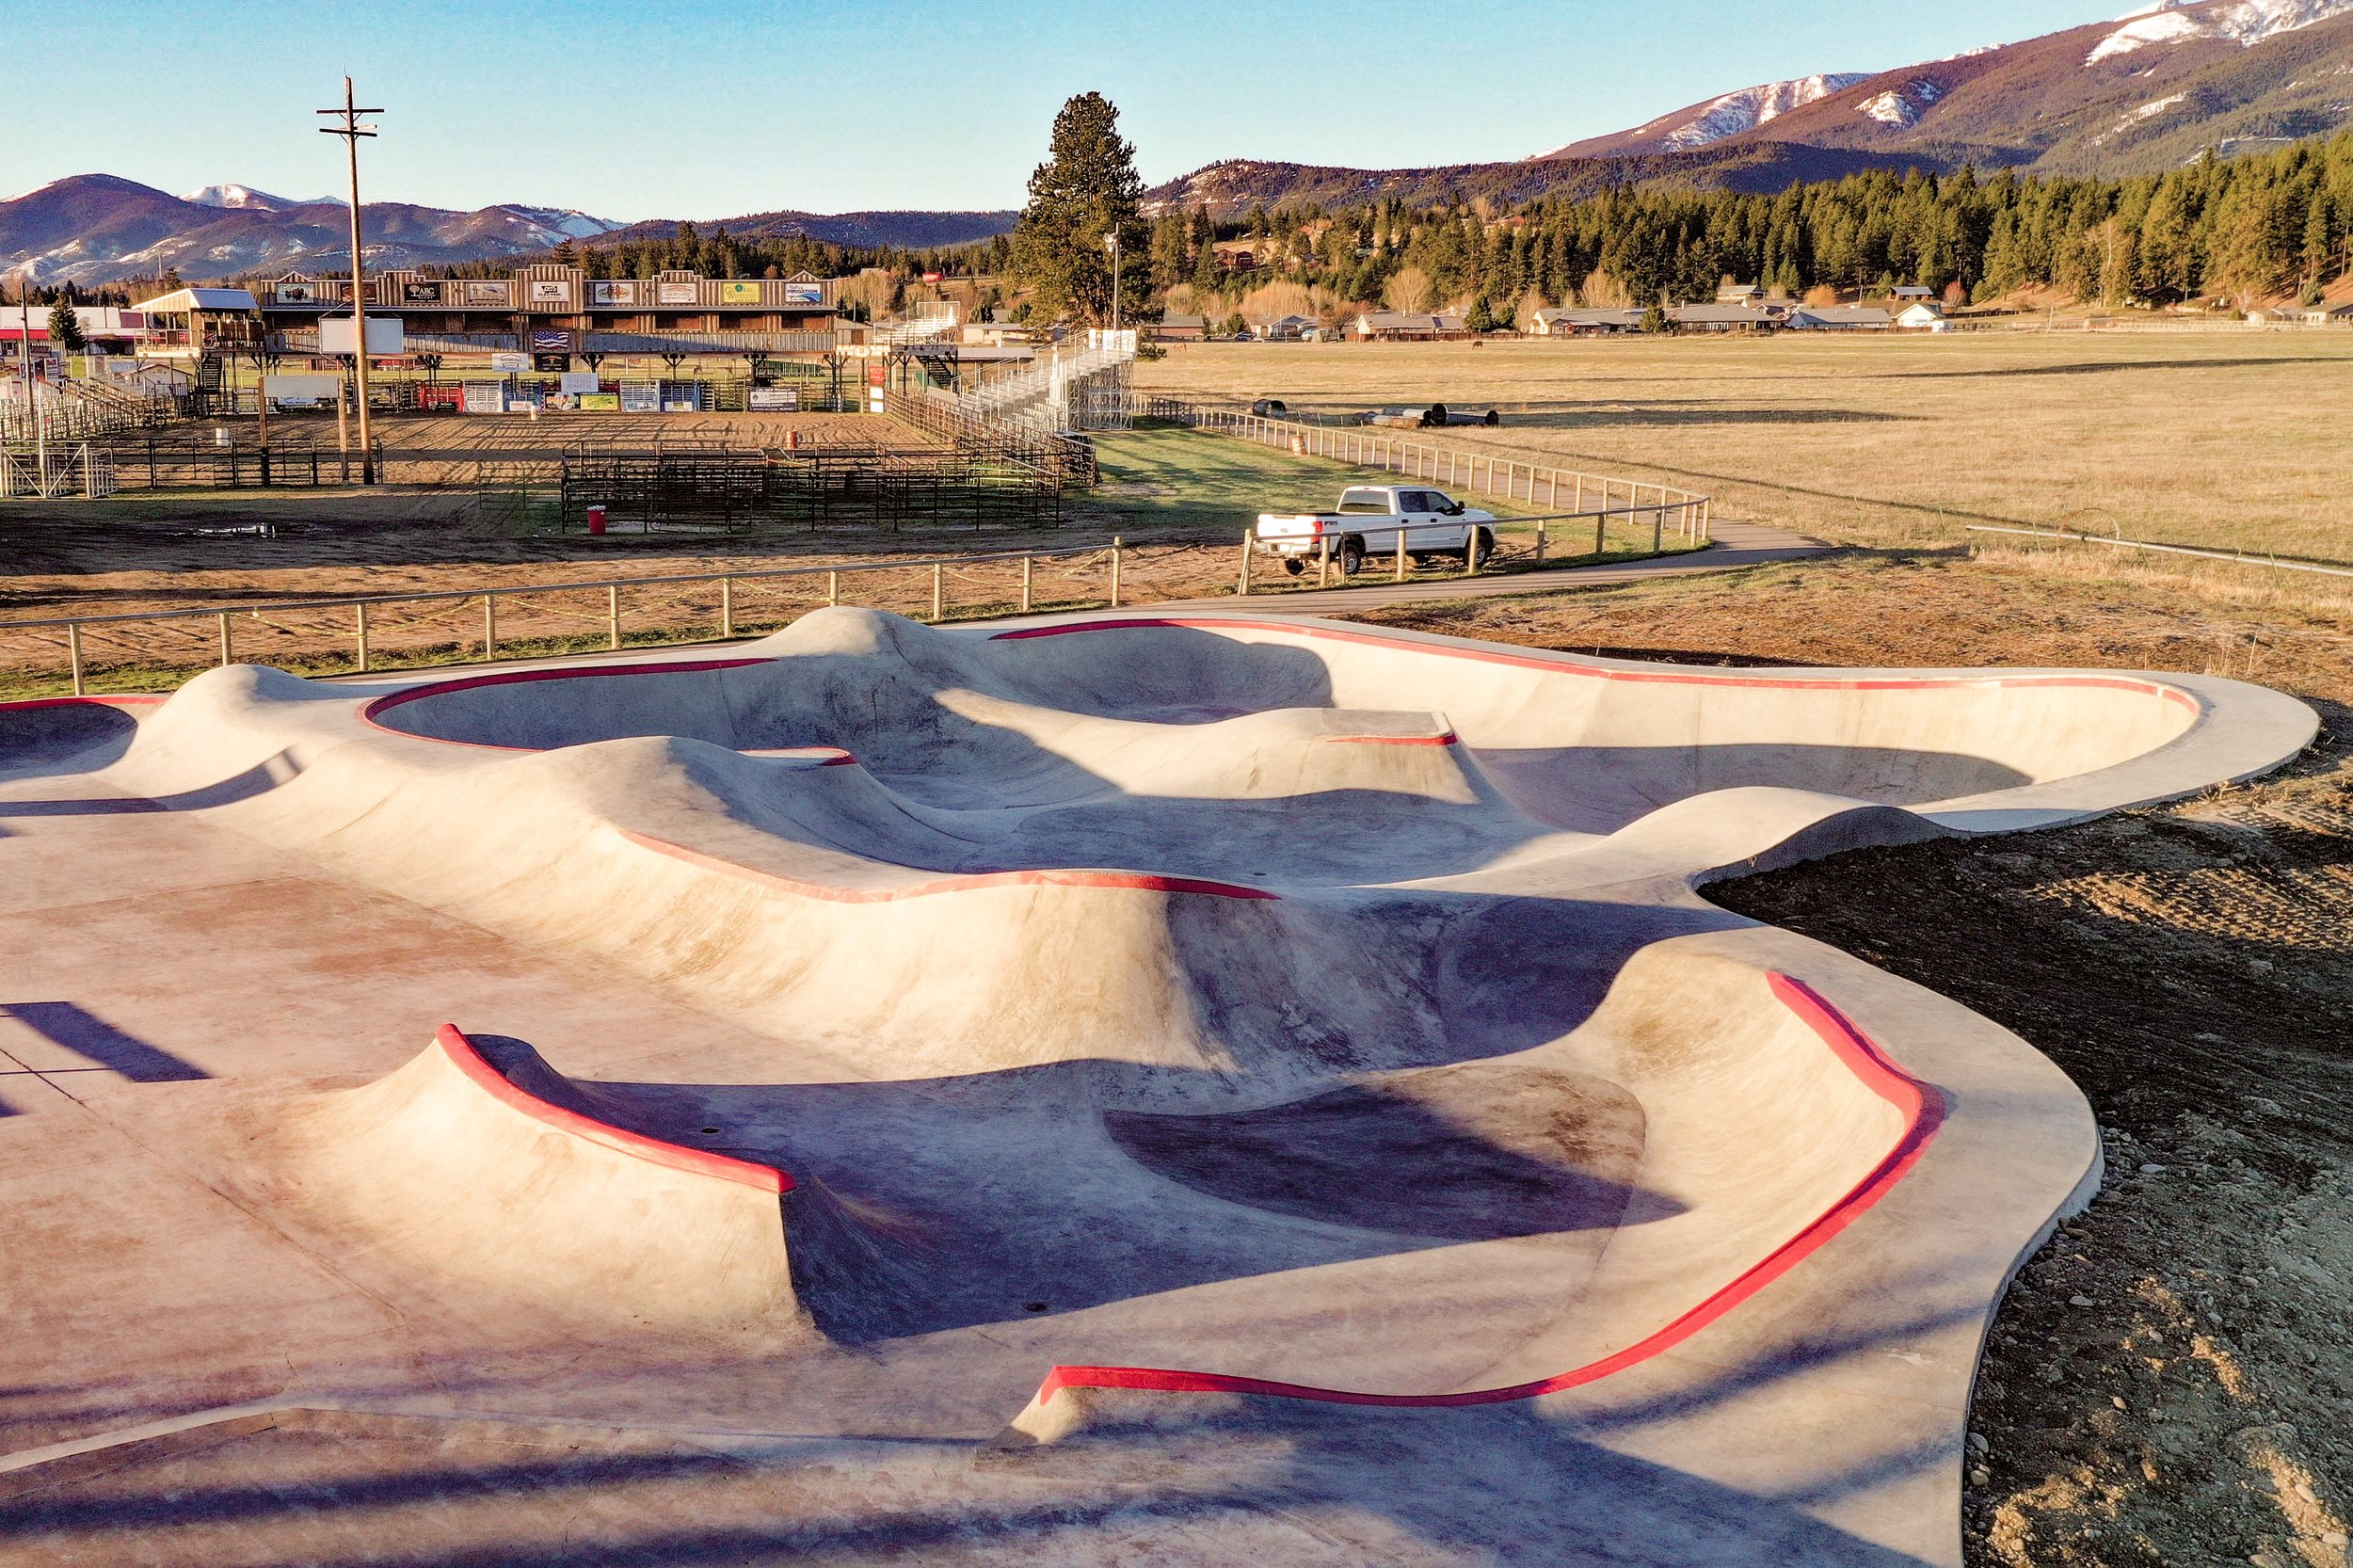 his spring we got to create a fun addition to the Darby, Montana skatepark 😎 courtesy of @mtskateparkassociation